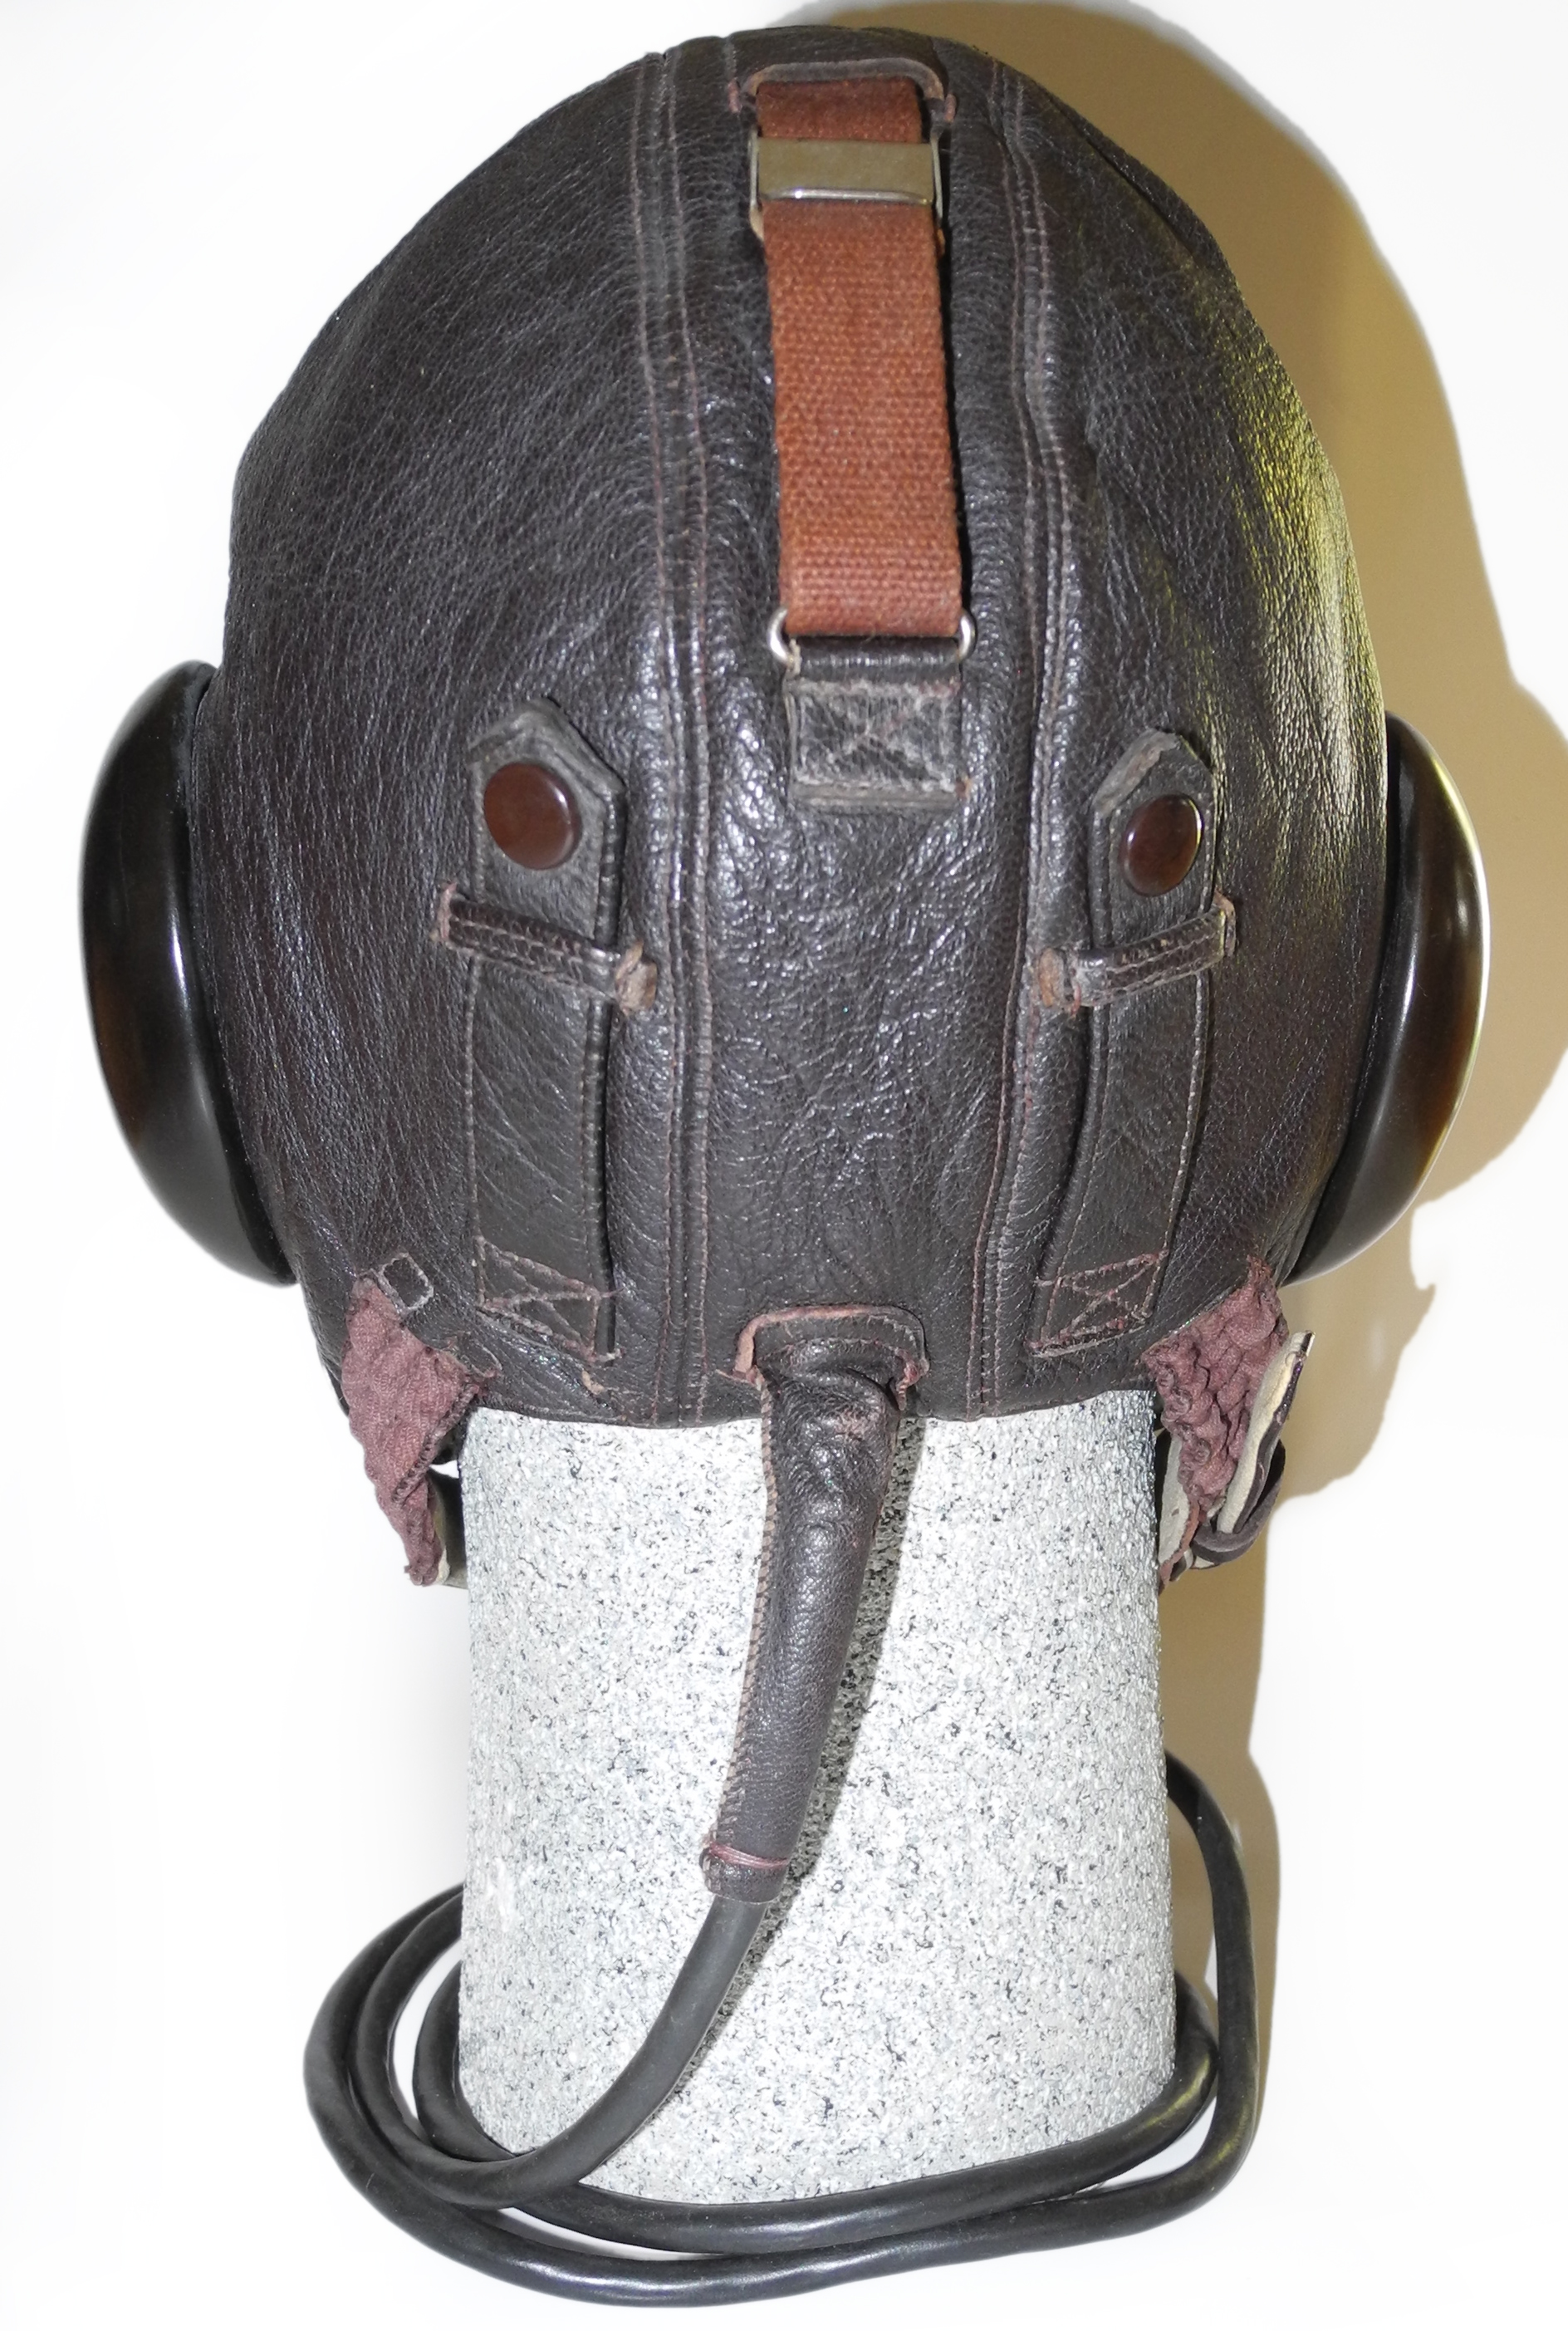 Rare LW LkpW100 flying helmet